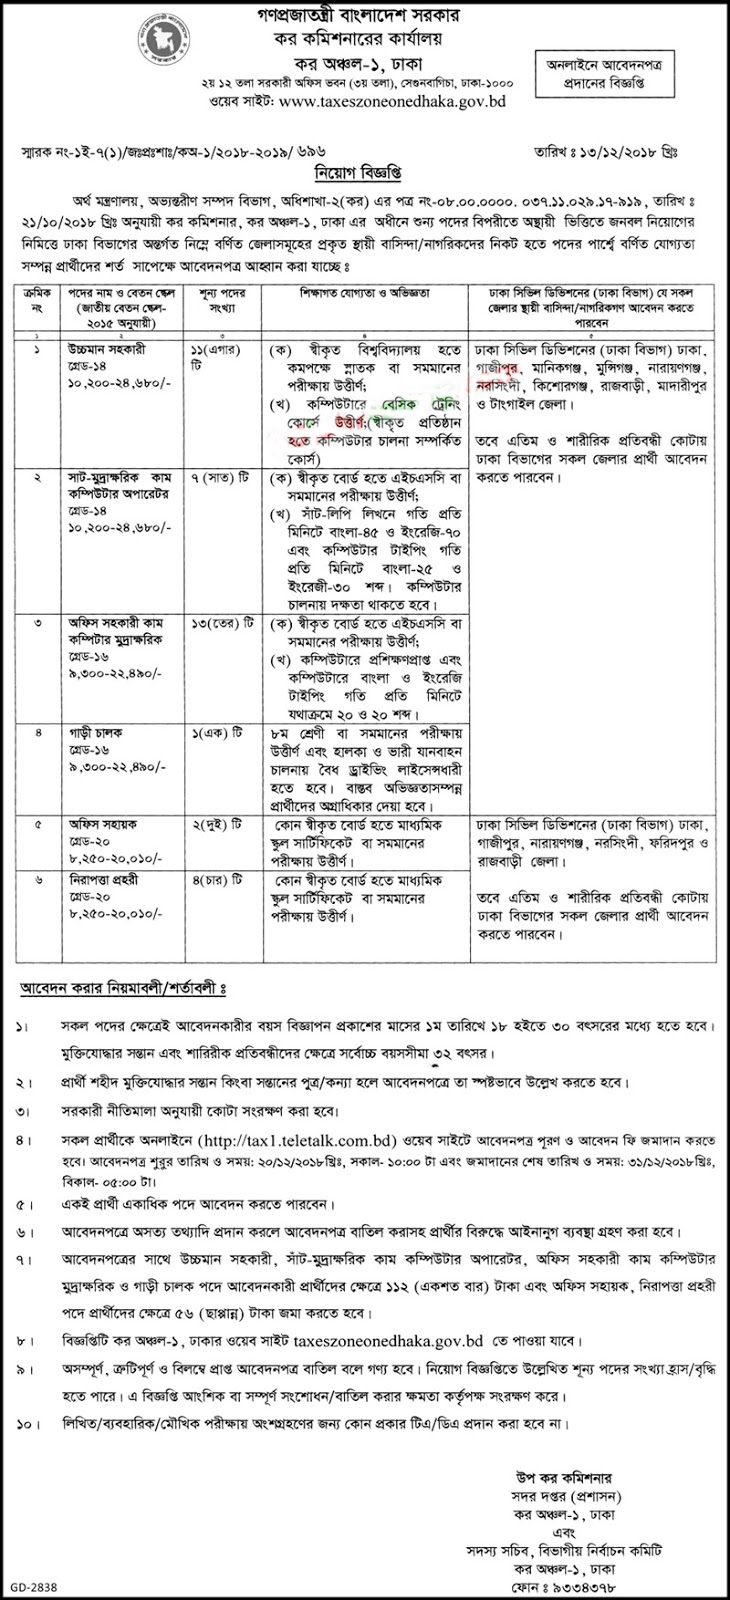 Taxes Zone-1 Dhaka Job Circular 2018